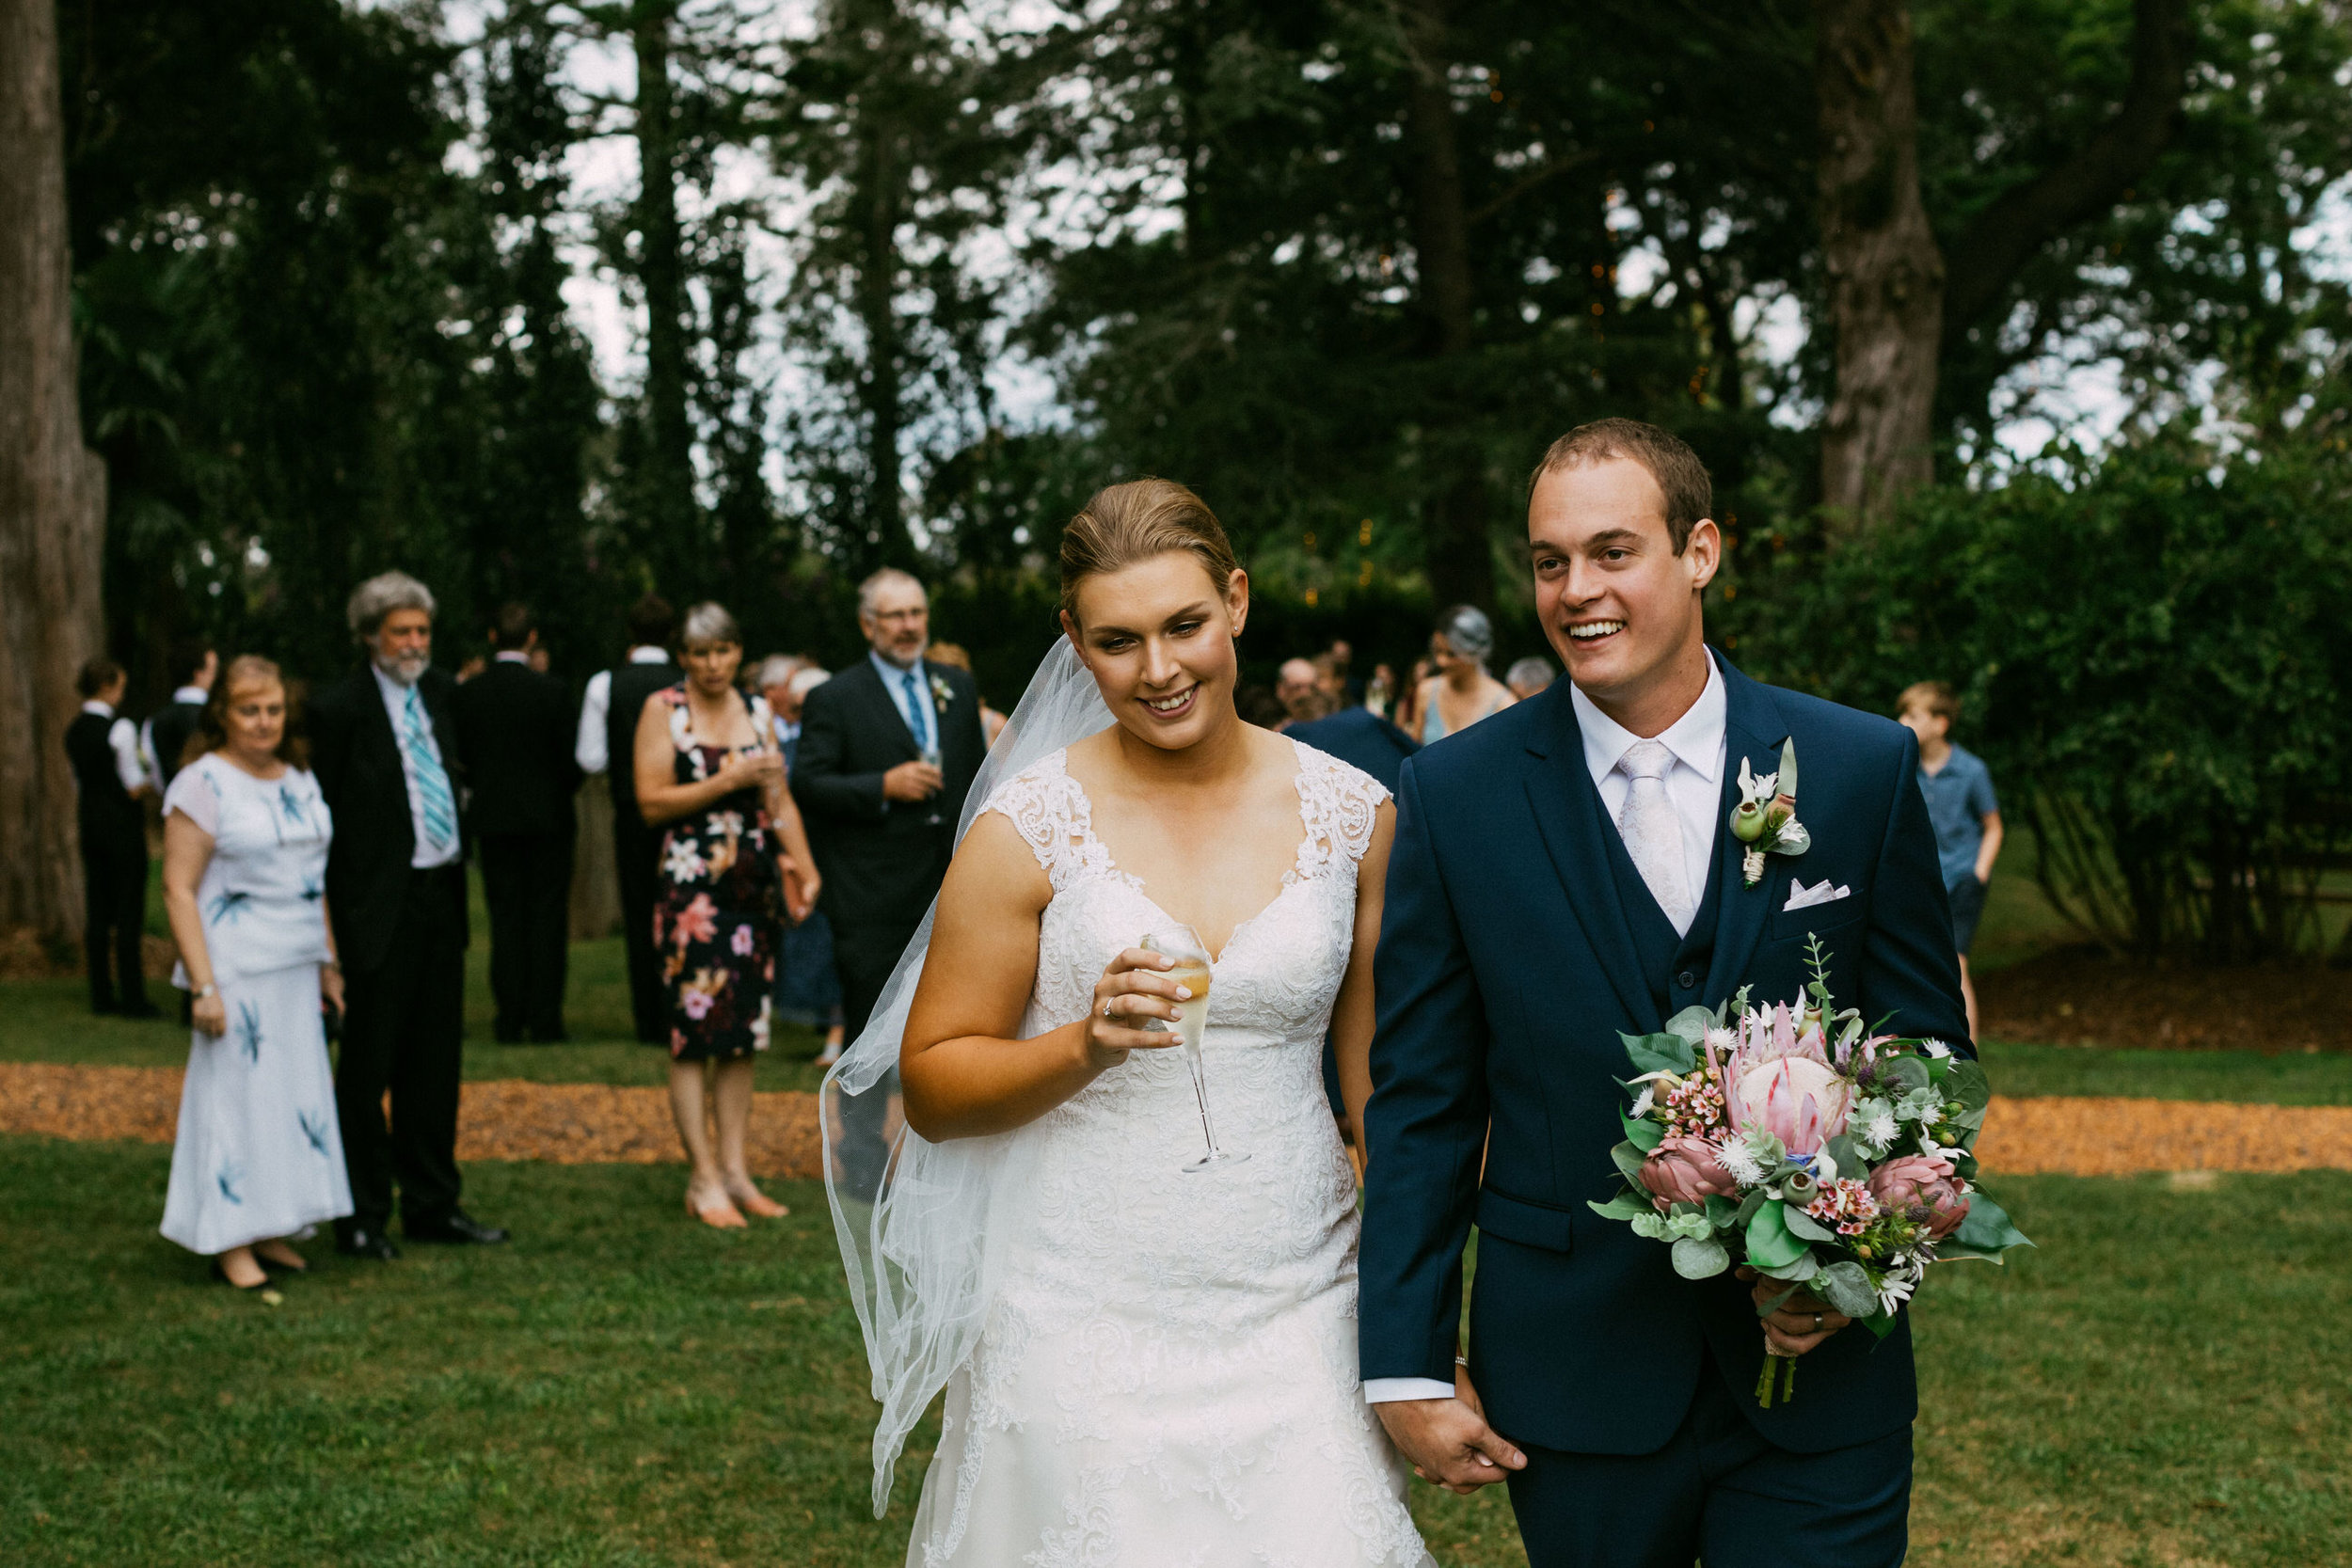 Toowoomba QLD Wedding 108.jpg